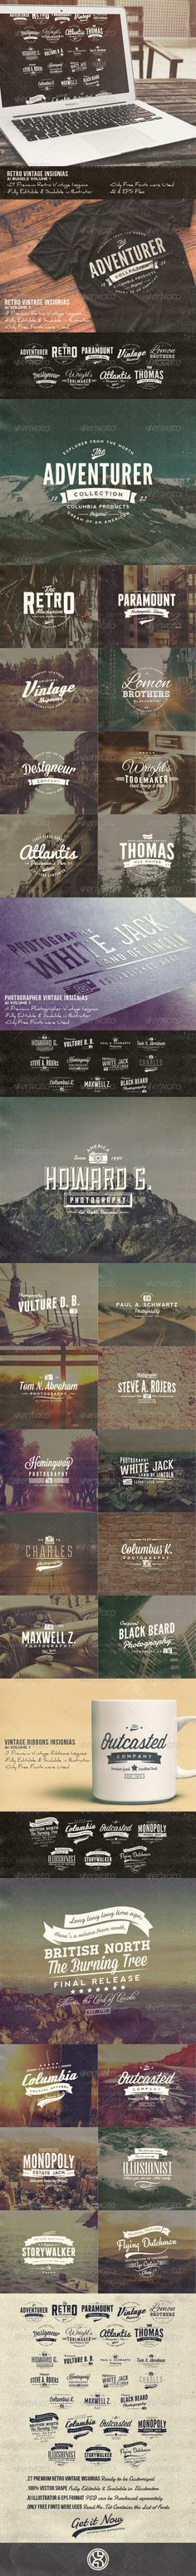 27 Retro Vintage Insignias AI Bundle | Buy and Download: http://graphicriver.net/item/27-retro-vintage-insignias-ai-bundle-volume-1/7741881?WT.ac=category_thumb&WT.z_author=mining&ref=ksioks